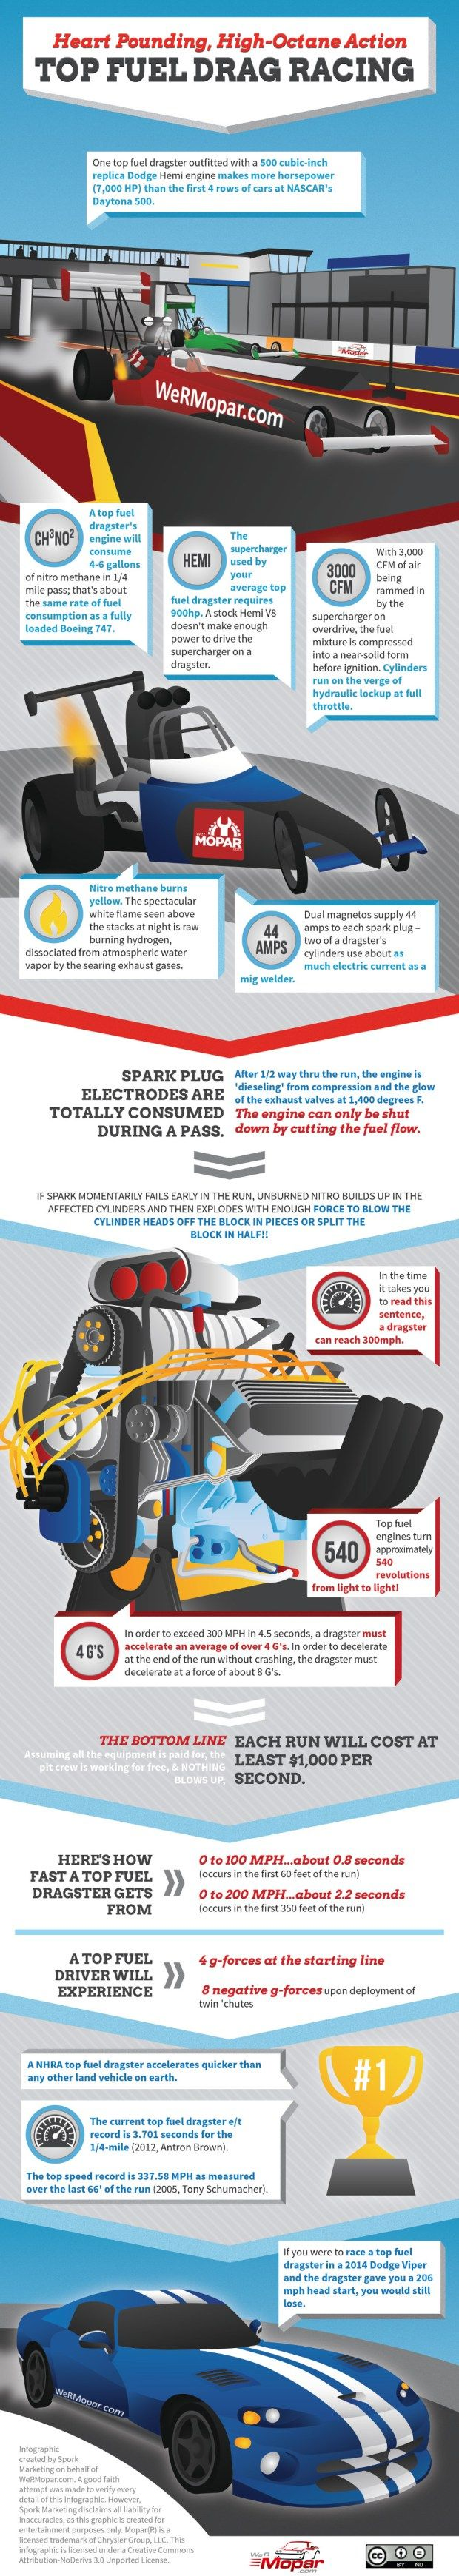 """Top Fuel Drag Racing - Love the last block of this infographic -  """"If you were to race a top fuel dragster in a 2014 Dodge Viper and the dragster gave you a 206 mph head start, you would still lose!"""""""